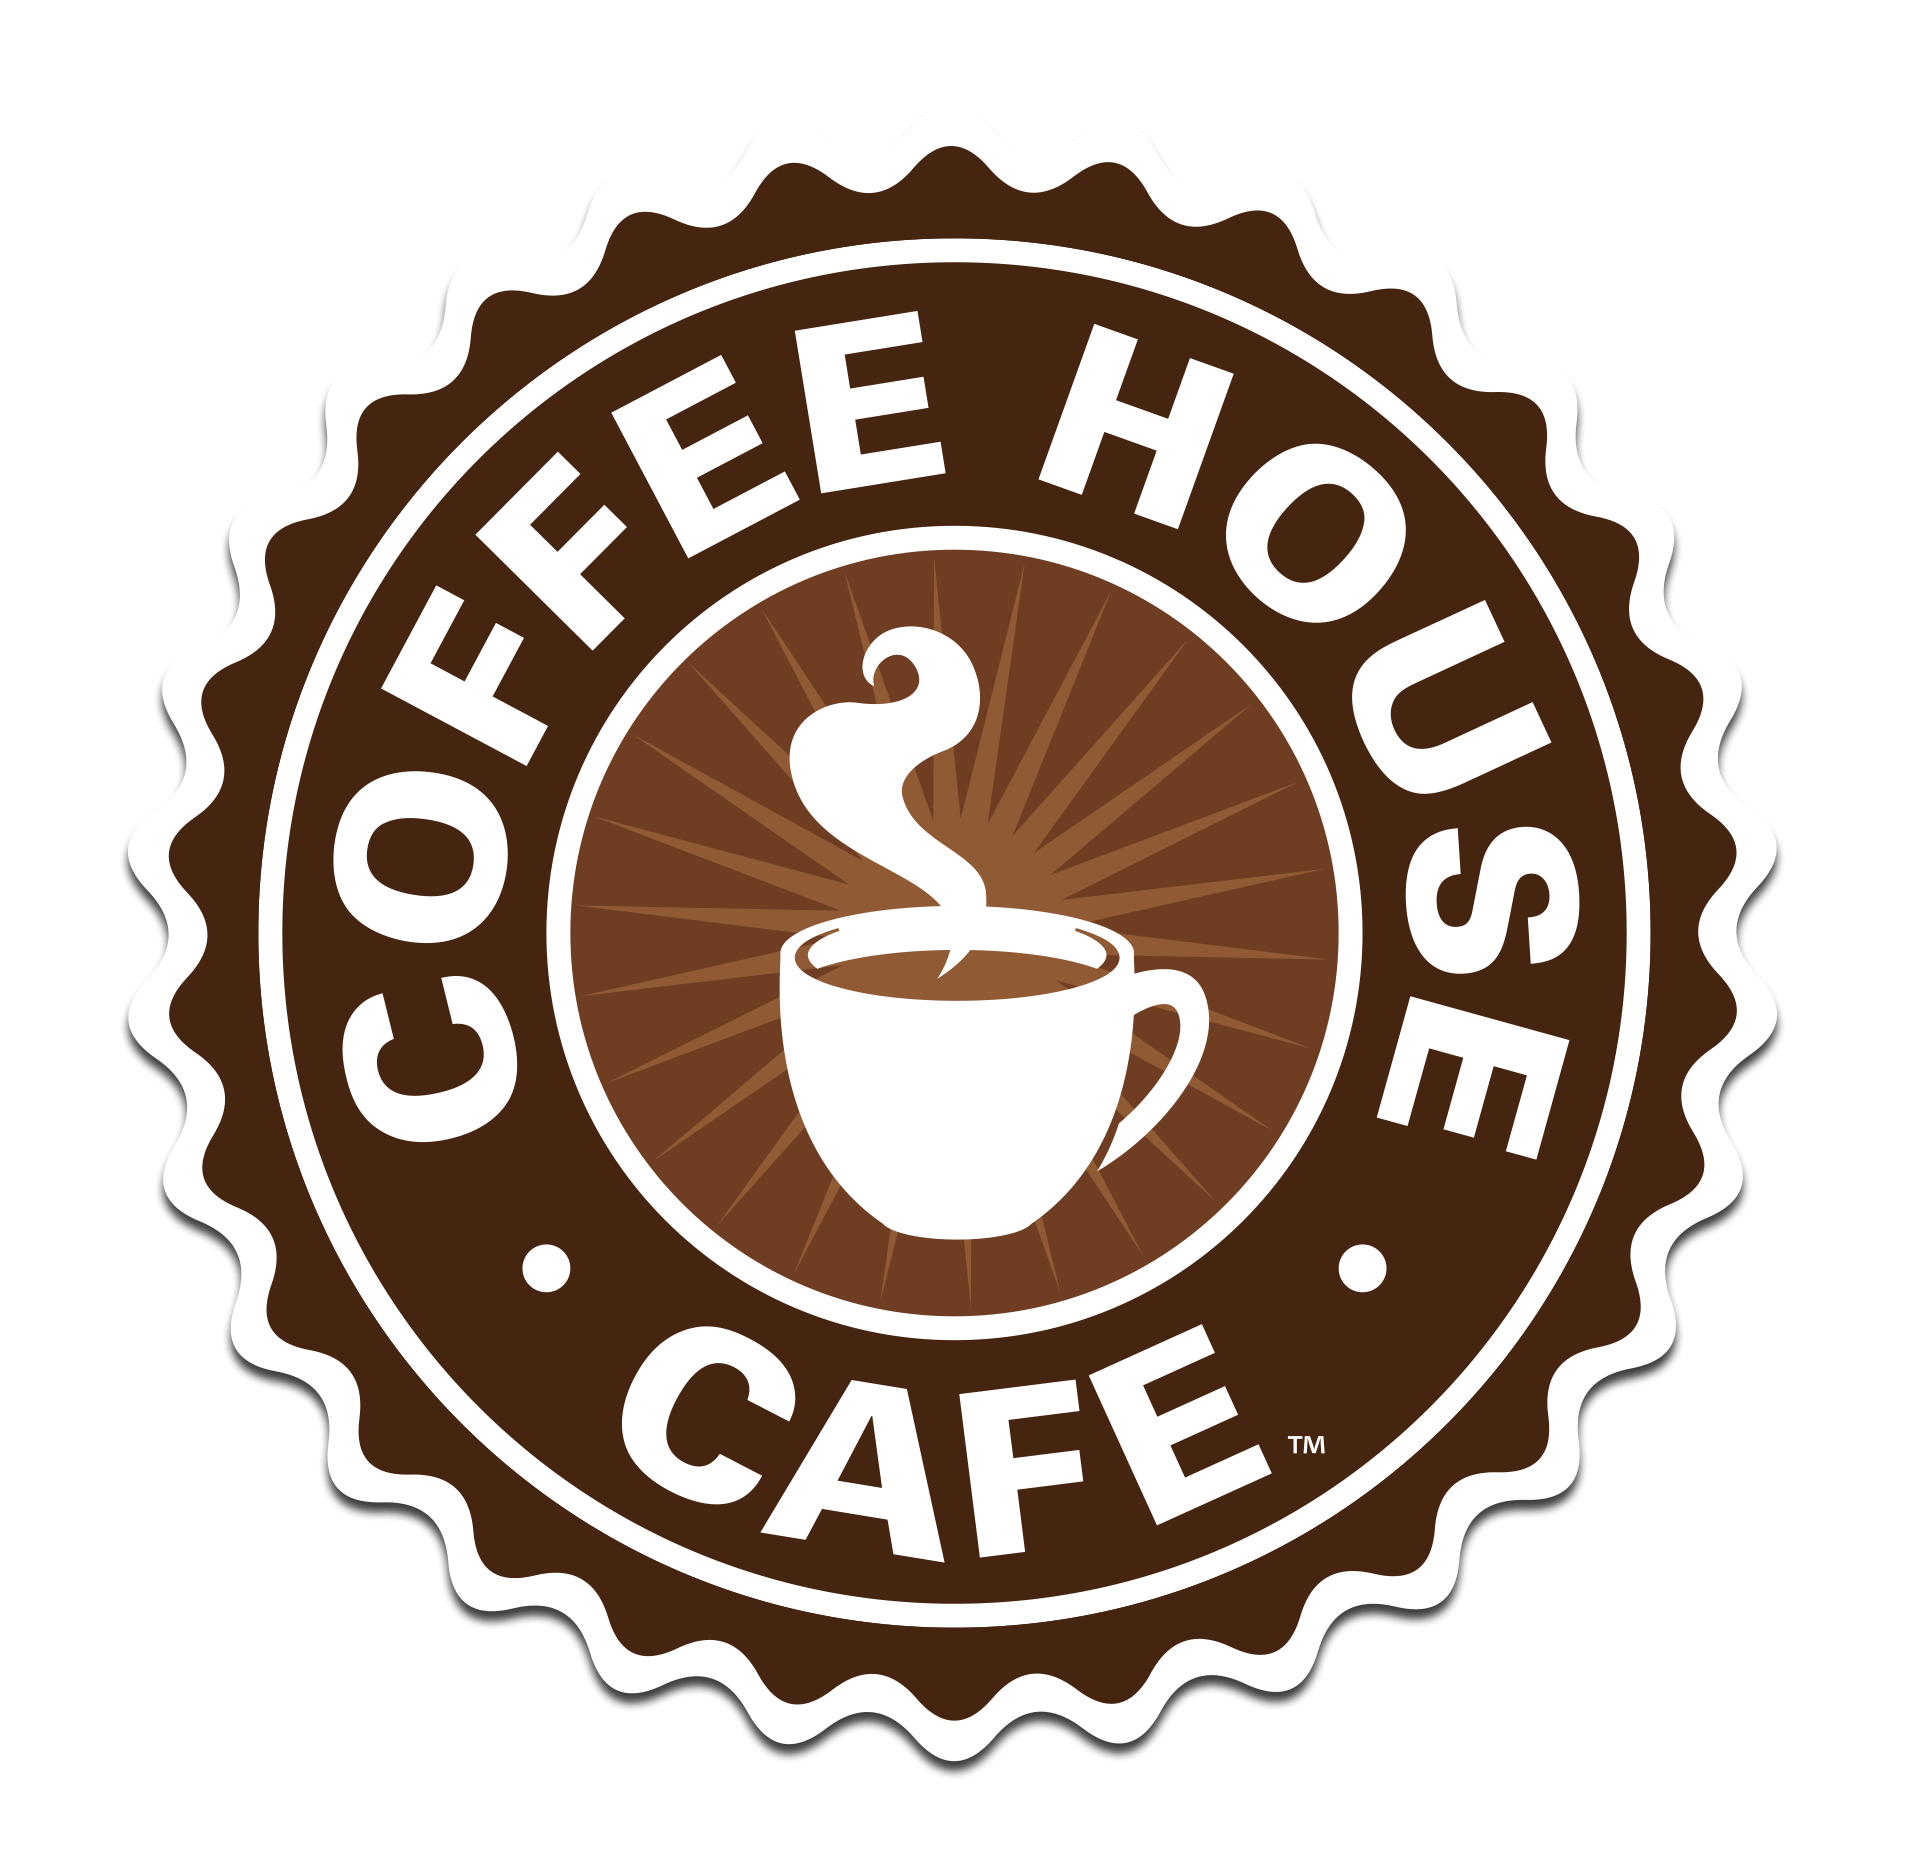 leapllc | Coffee House Cafe